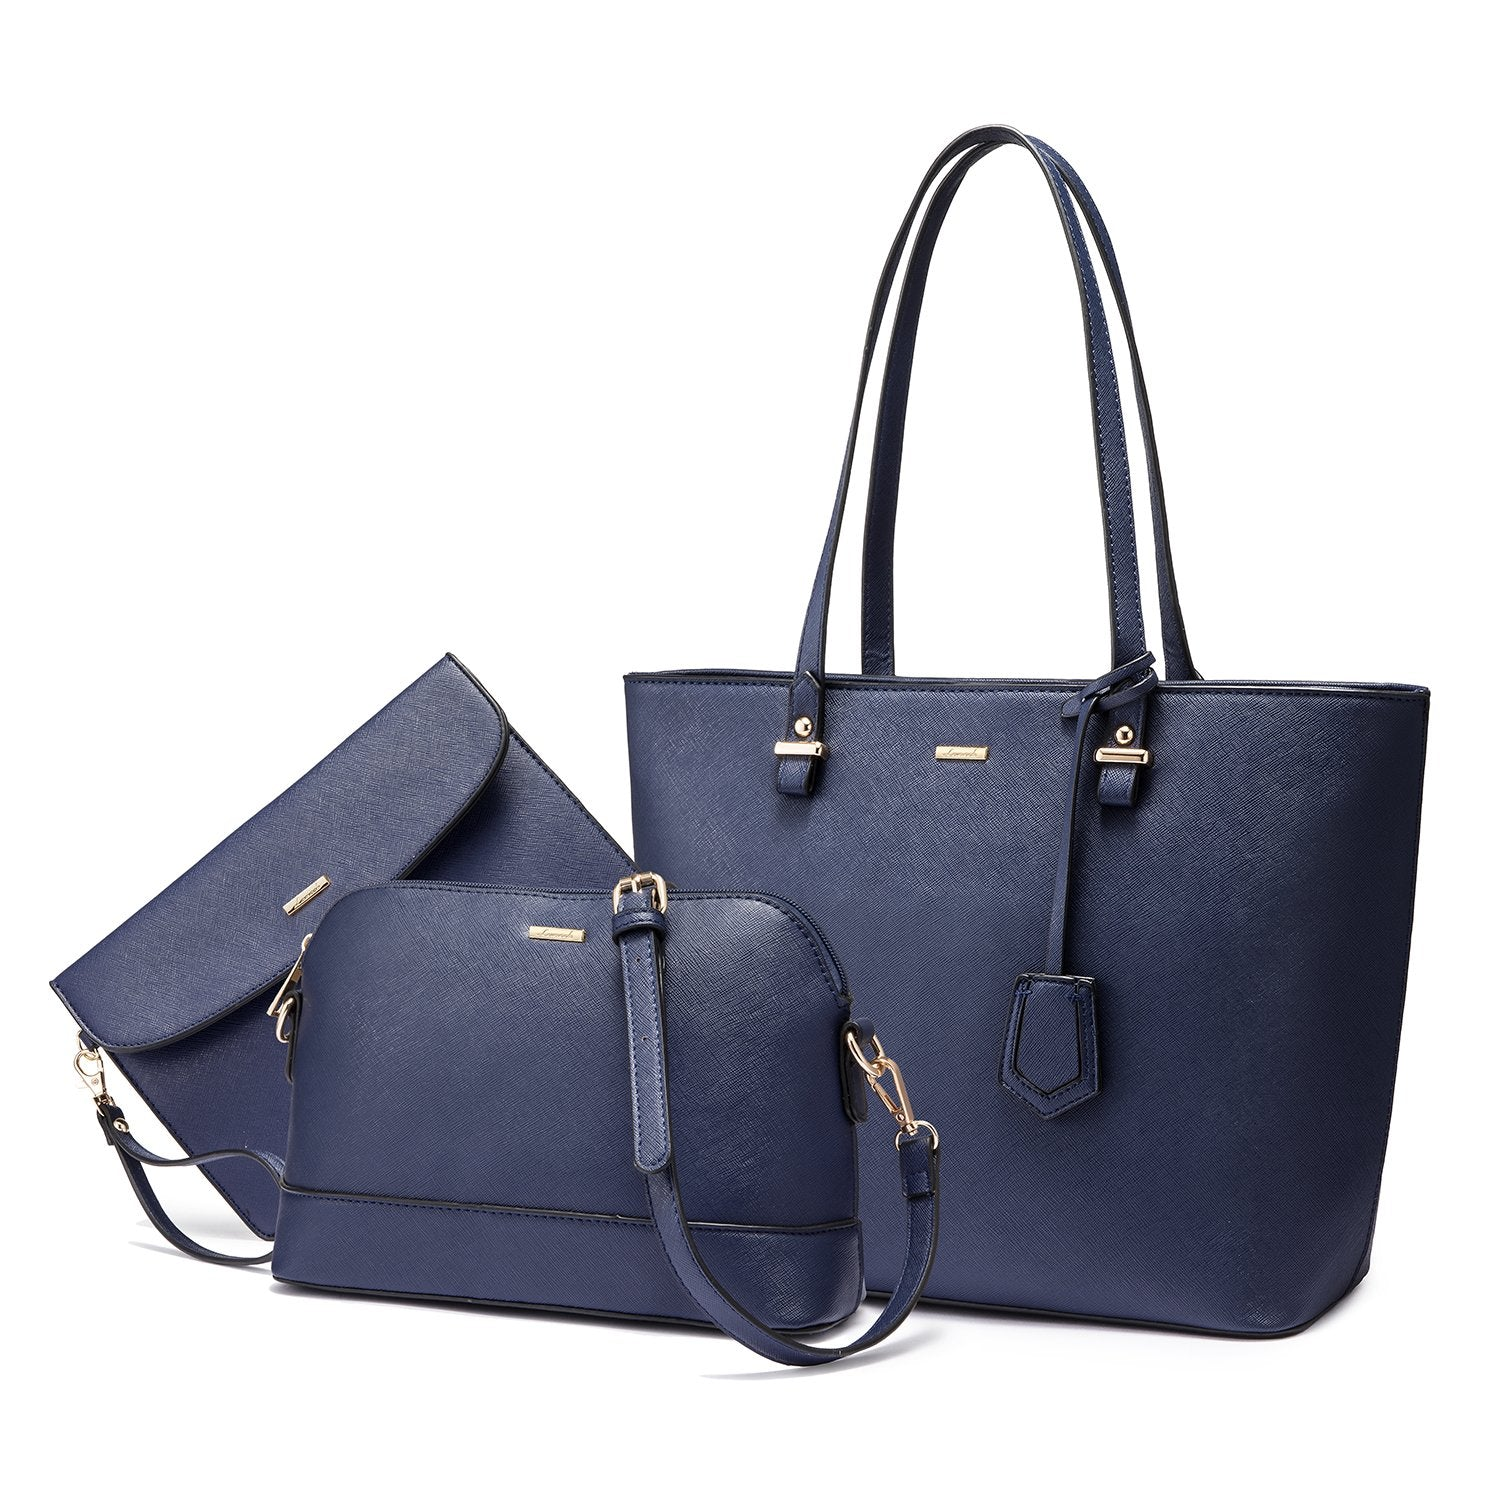 Lovevook-handbag-composite-bag-RHNWB0976-Dark-Blue-positive